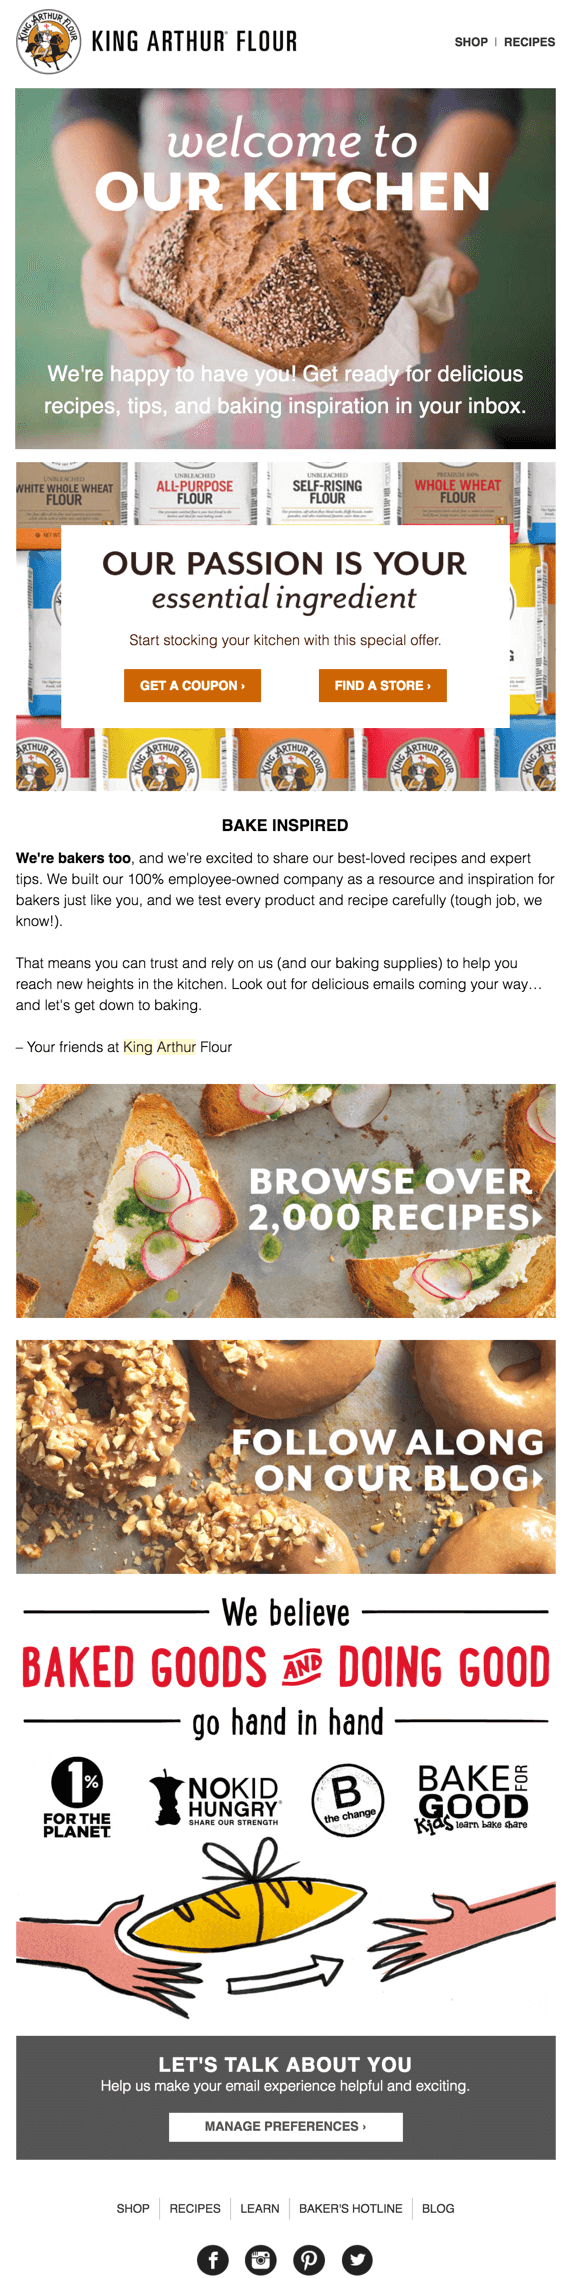 Welcome email by King Arthur Flour